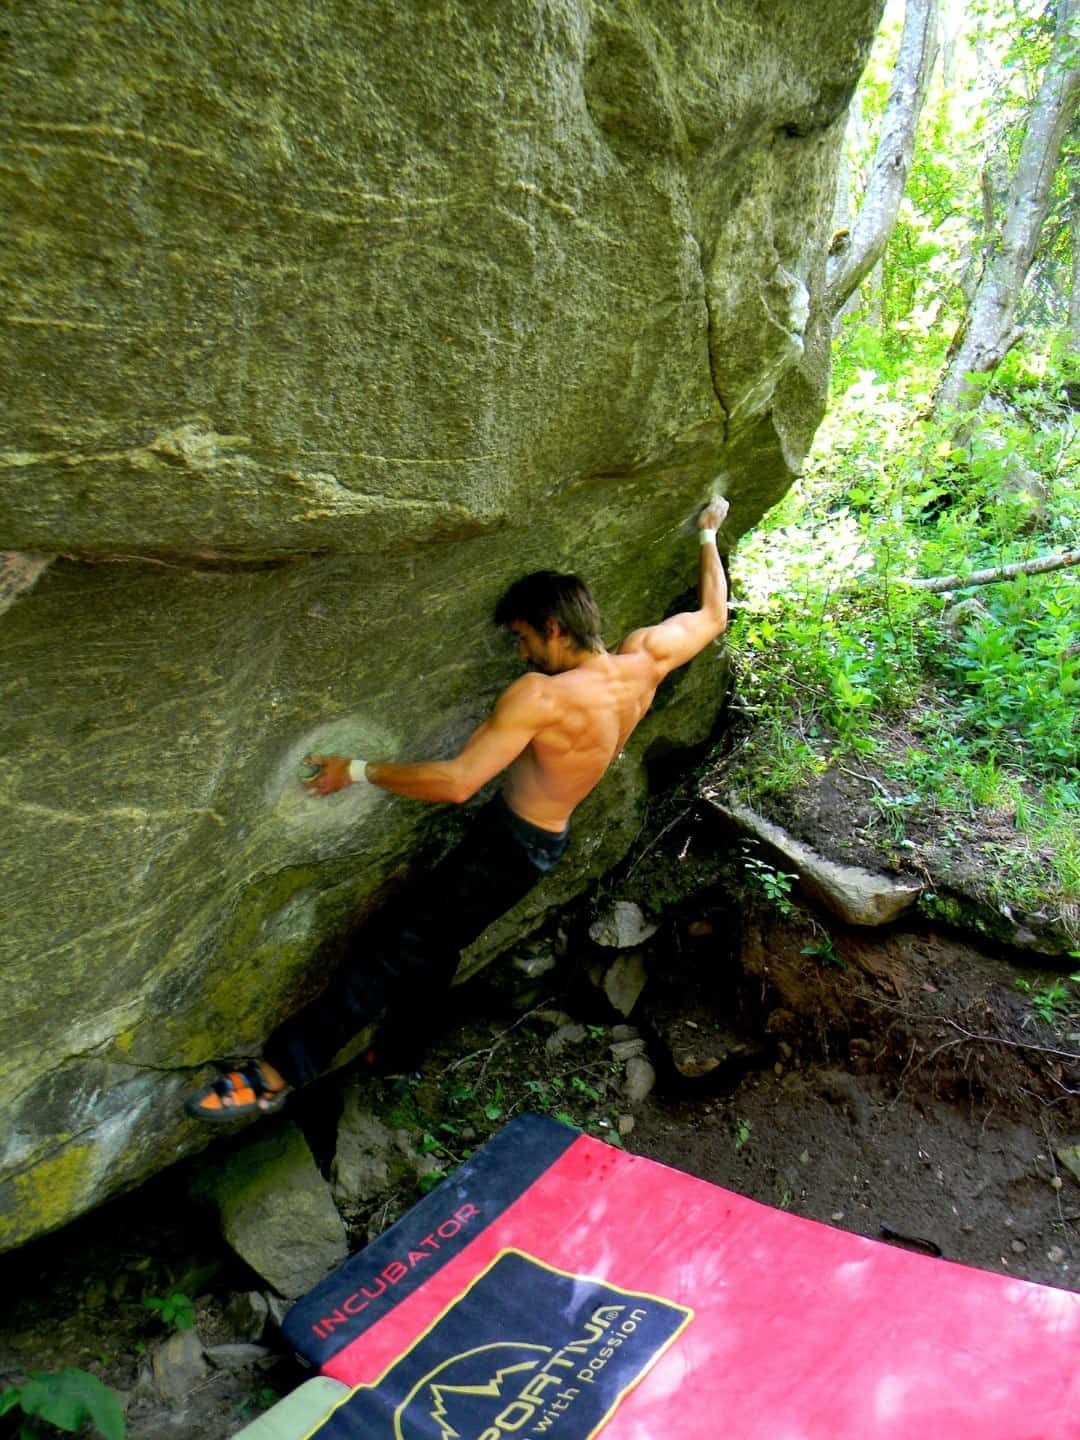 Getting better at outdoor bouldering